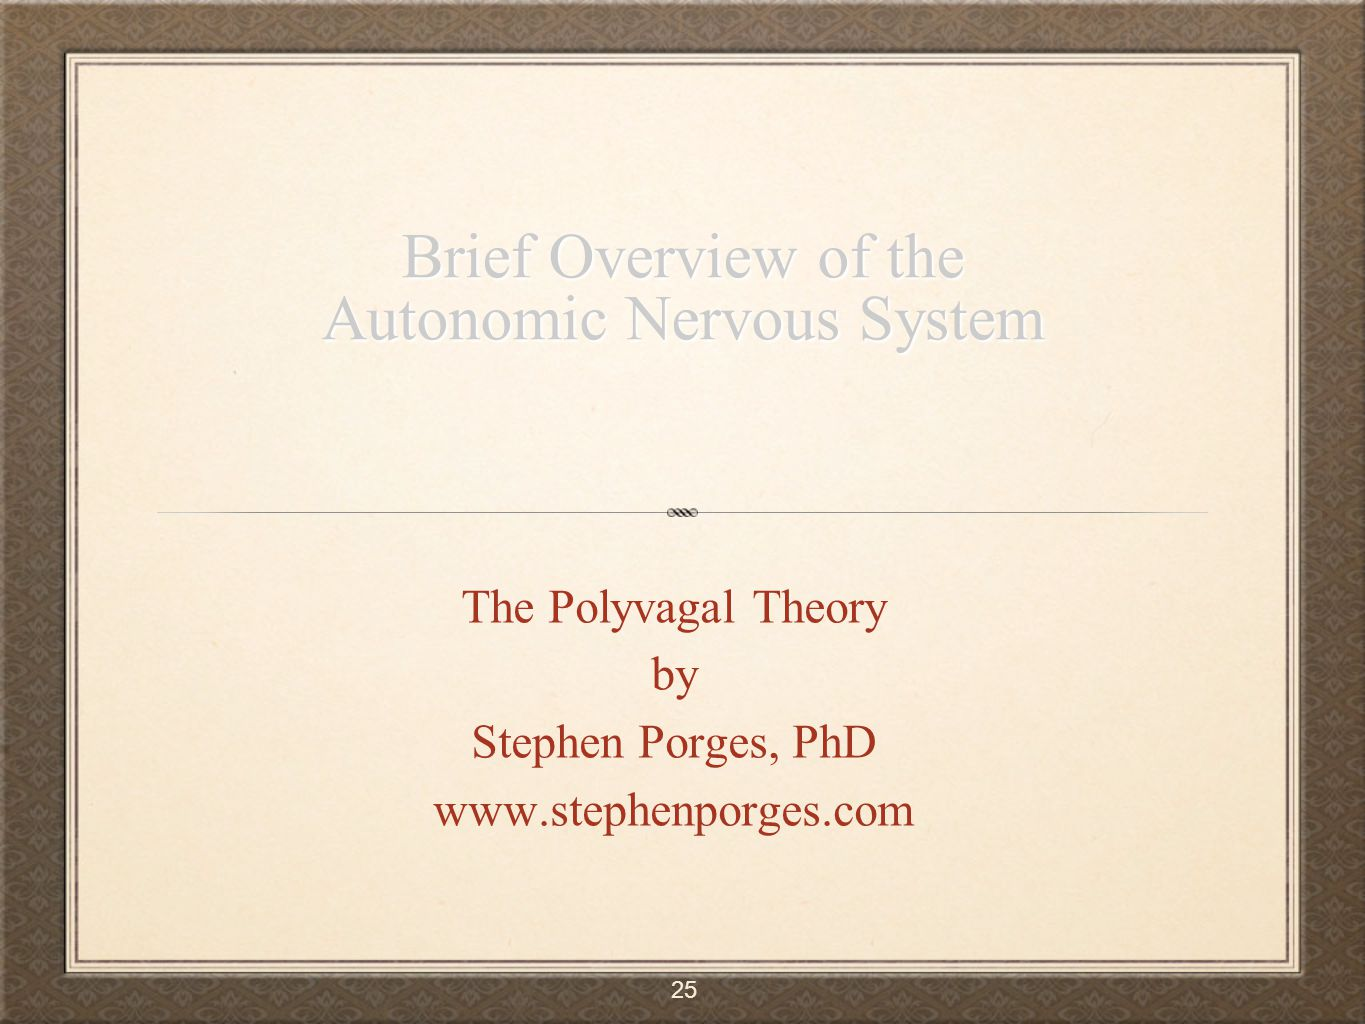 Brief Overview of the Autonomic Nervous System